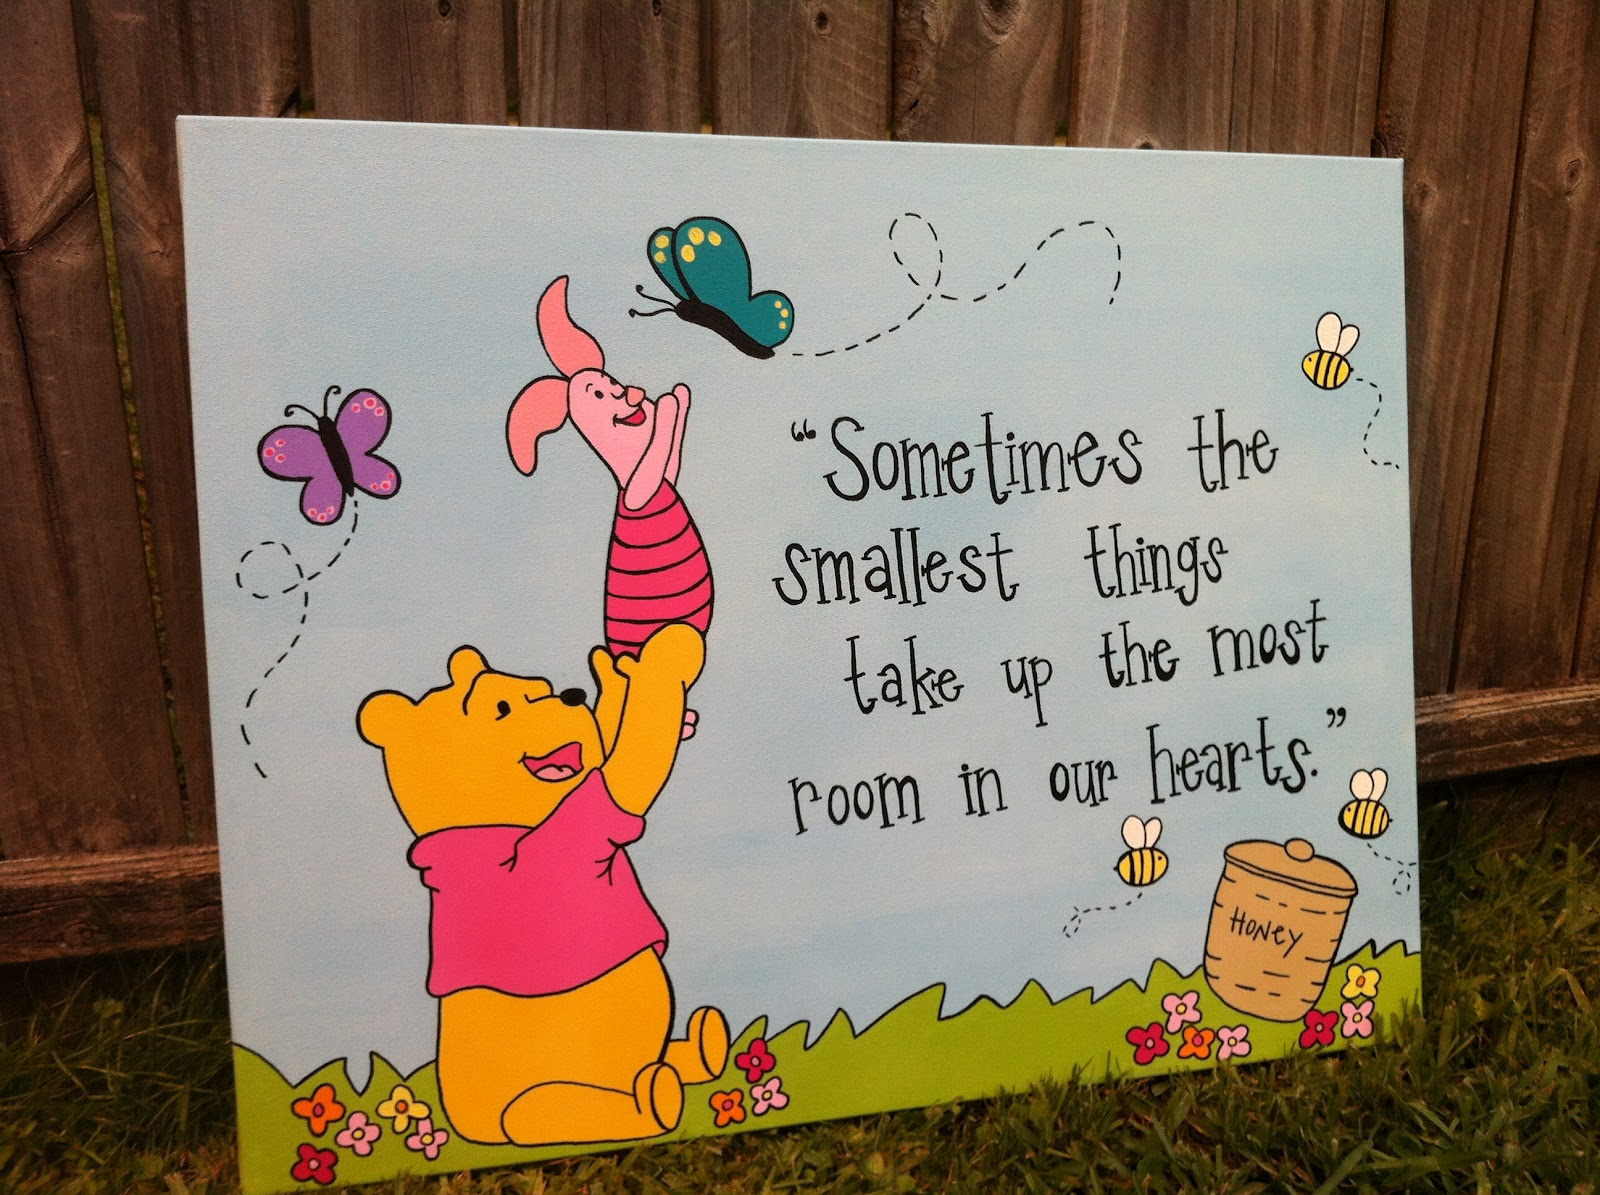 Pooh Quotes About Friendship Friendship Quotes Winnie The Pooh And Piglet Piglet Quotes On